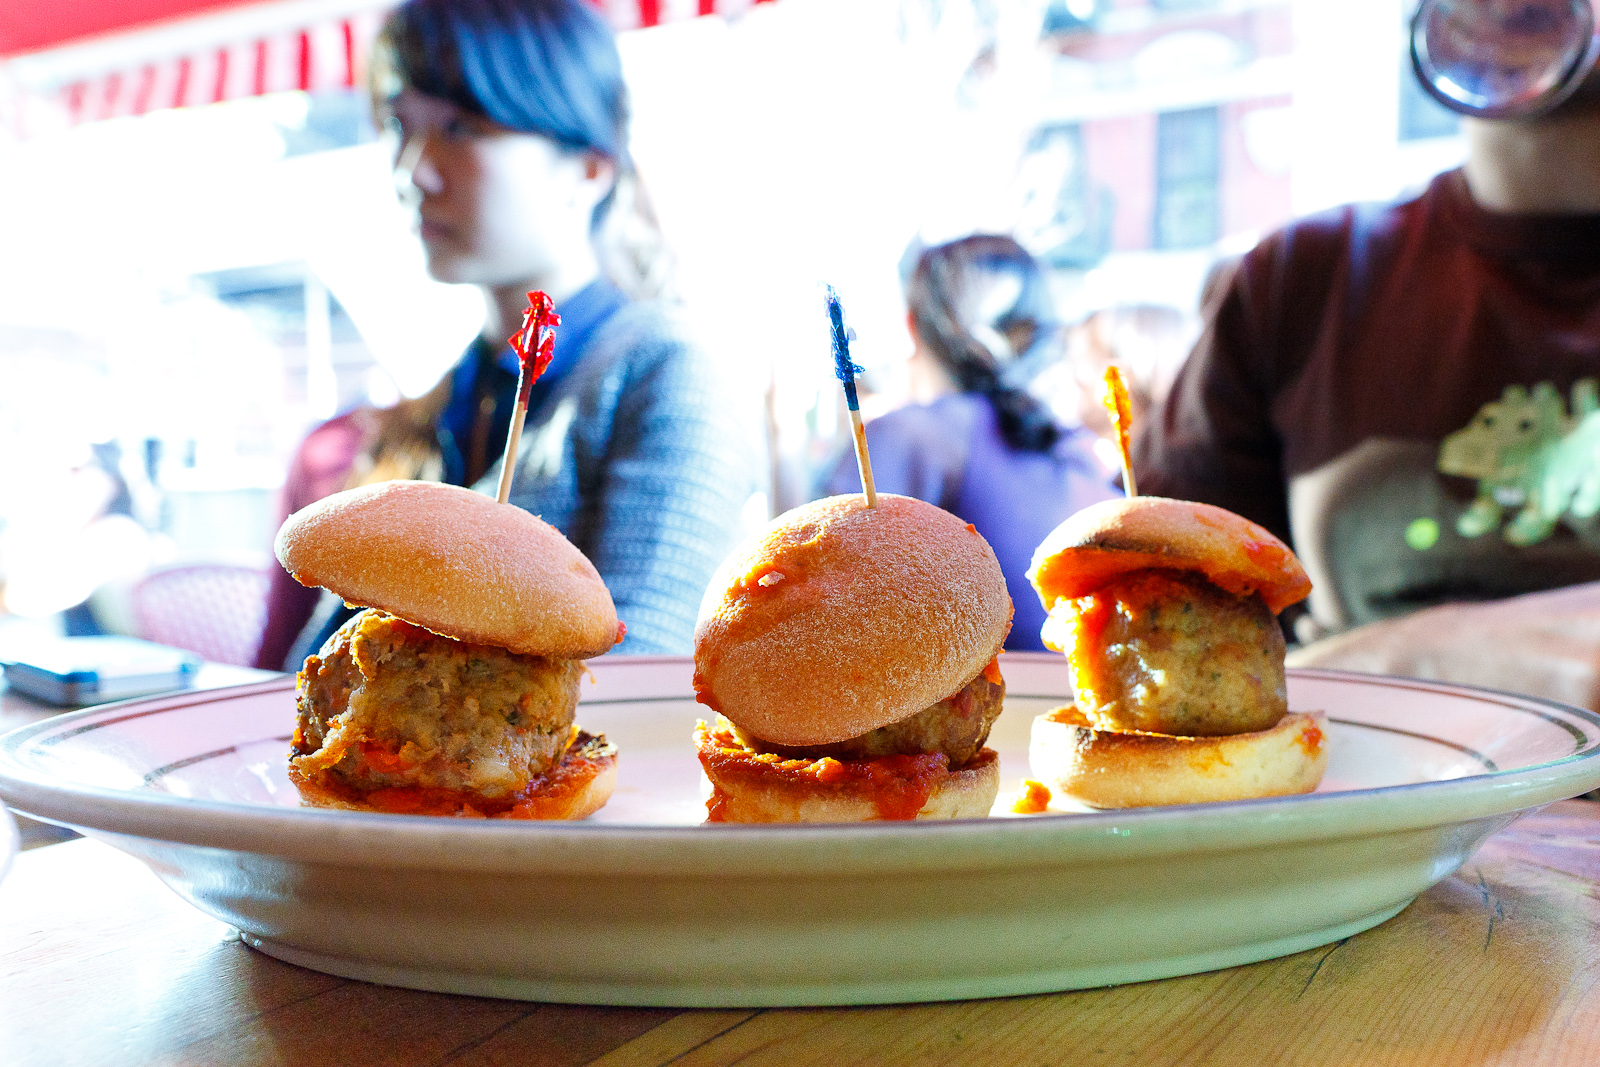 Classic beef, spicy pork, chicken sliders with tomato sauce ($9)